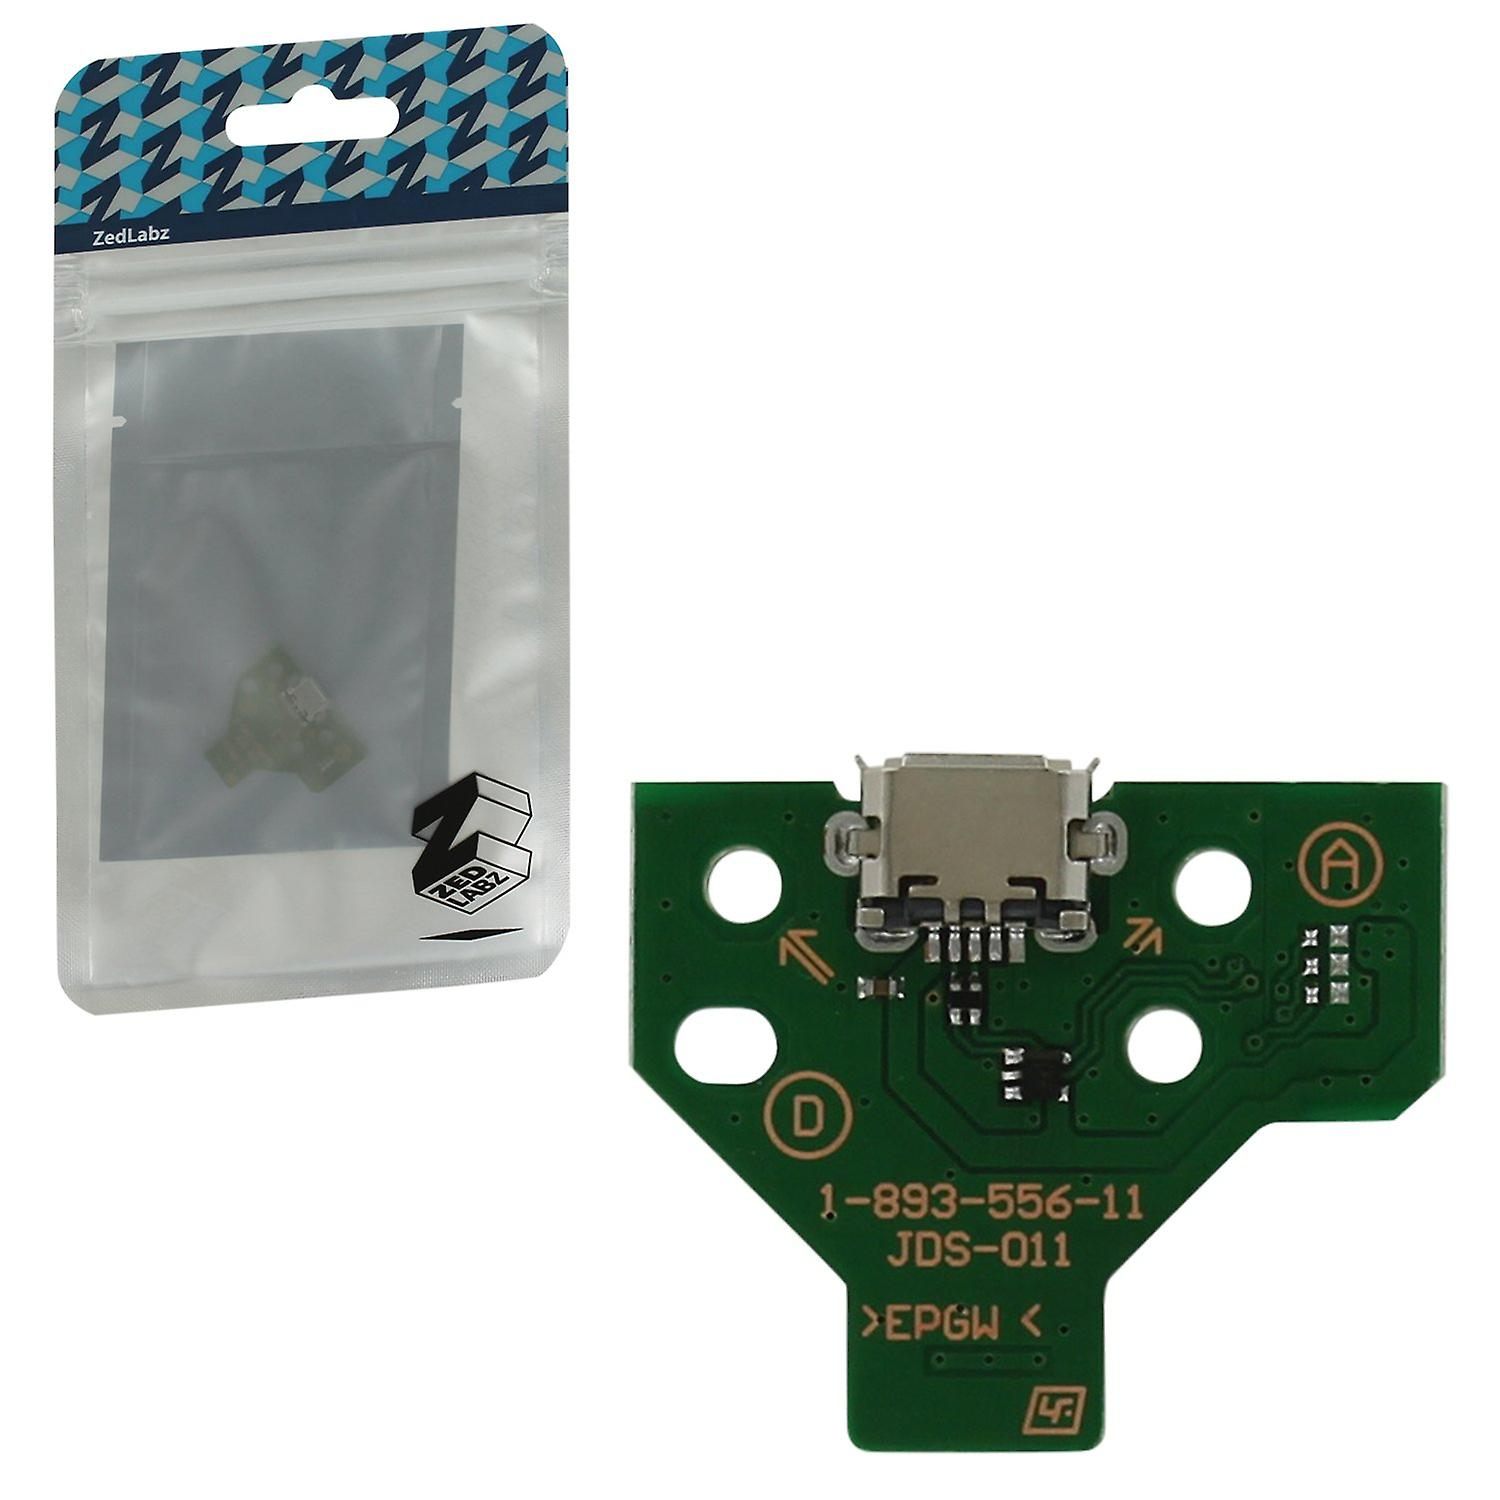 12 Pin v2 Micro USB Ladebuchse ic Board für sony ps4 Controller jds-011